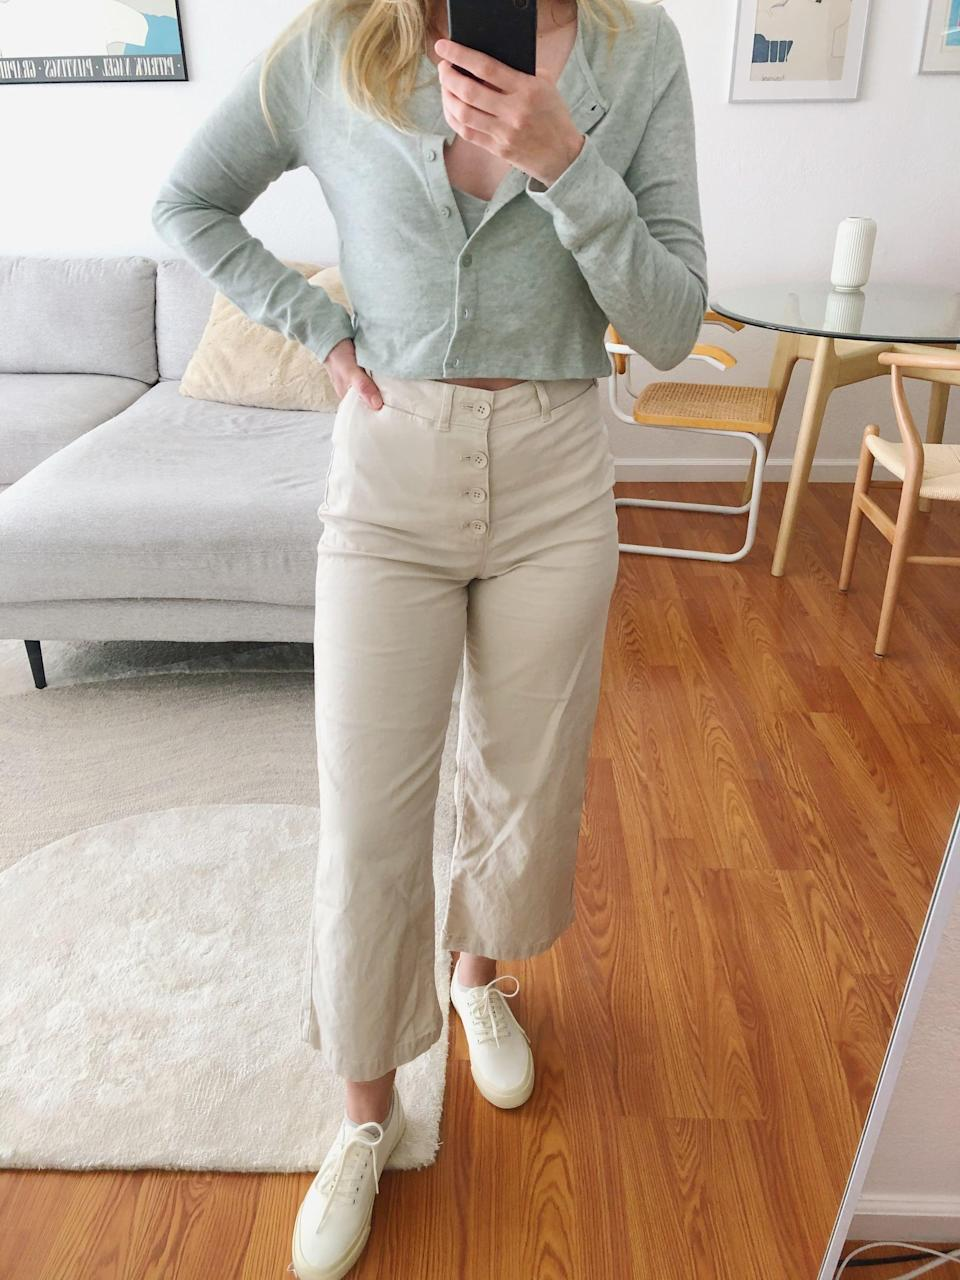 """<p><strong>The item:</strong> <span>Old Navy Wide-Leg Pants</span> (Sold Out) </p> <p><strong>What our editor said:</strong> """"No matter how I style them, I find myself wanting to wear them again and again. The flattering silhouette not only looks good, but they feel good, too. I chose them in a beige shade, because I love wearing neutrals, but they come in two other fun options as well."""" - KJ </p> <p>If you want to read more, here is the <a href=""""http://www.popsugar.com/fashion/comfortable-wide-leg-pants-from-old-navy-editor-review-47802124"""" class=""""link rapid-noclick-resp"""" rel=""""nofollow noopener"""" target=""""_blank"""" data-ylk=""""slk:complete review"""">complete review</a>.</p>"""